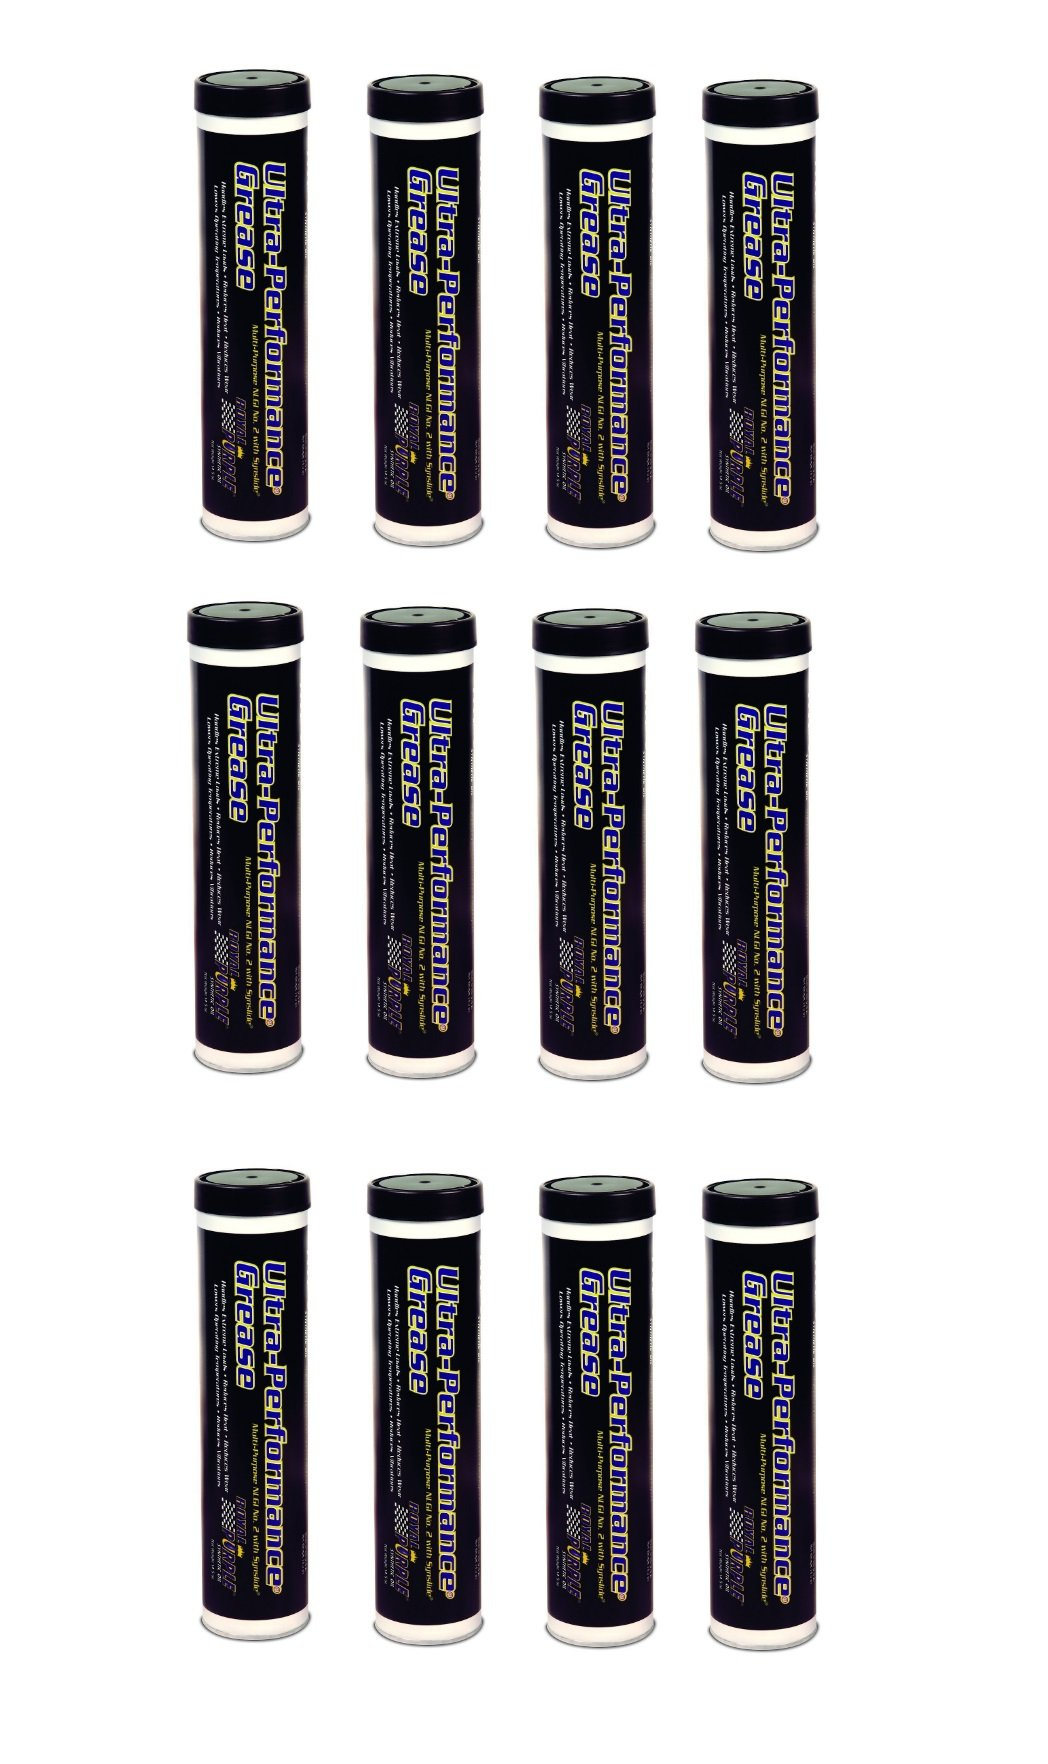 Royal Purple NLGI #2 Tube Multi-Purpose Synthetic Ultra Performance Grease - 14.1oz. (Pack of 12) by Royal Purple